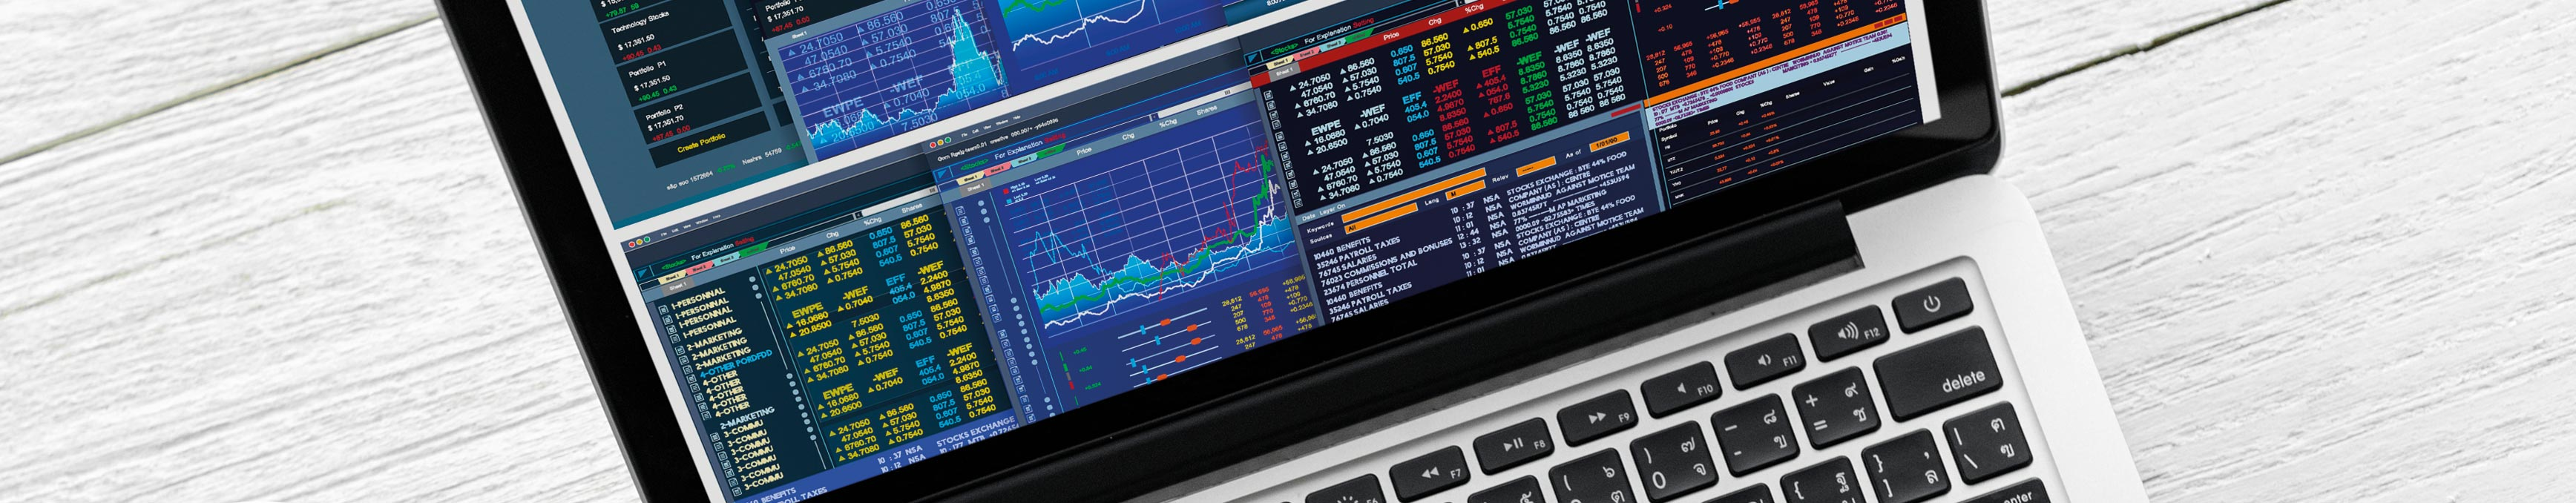 Laptop with financial figures